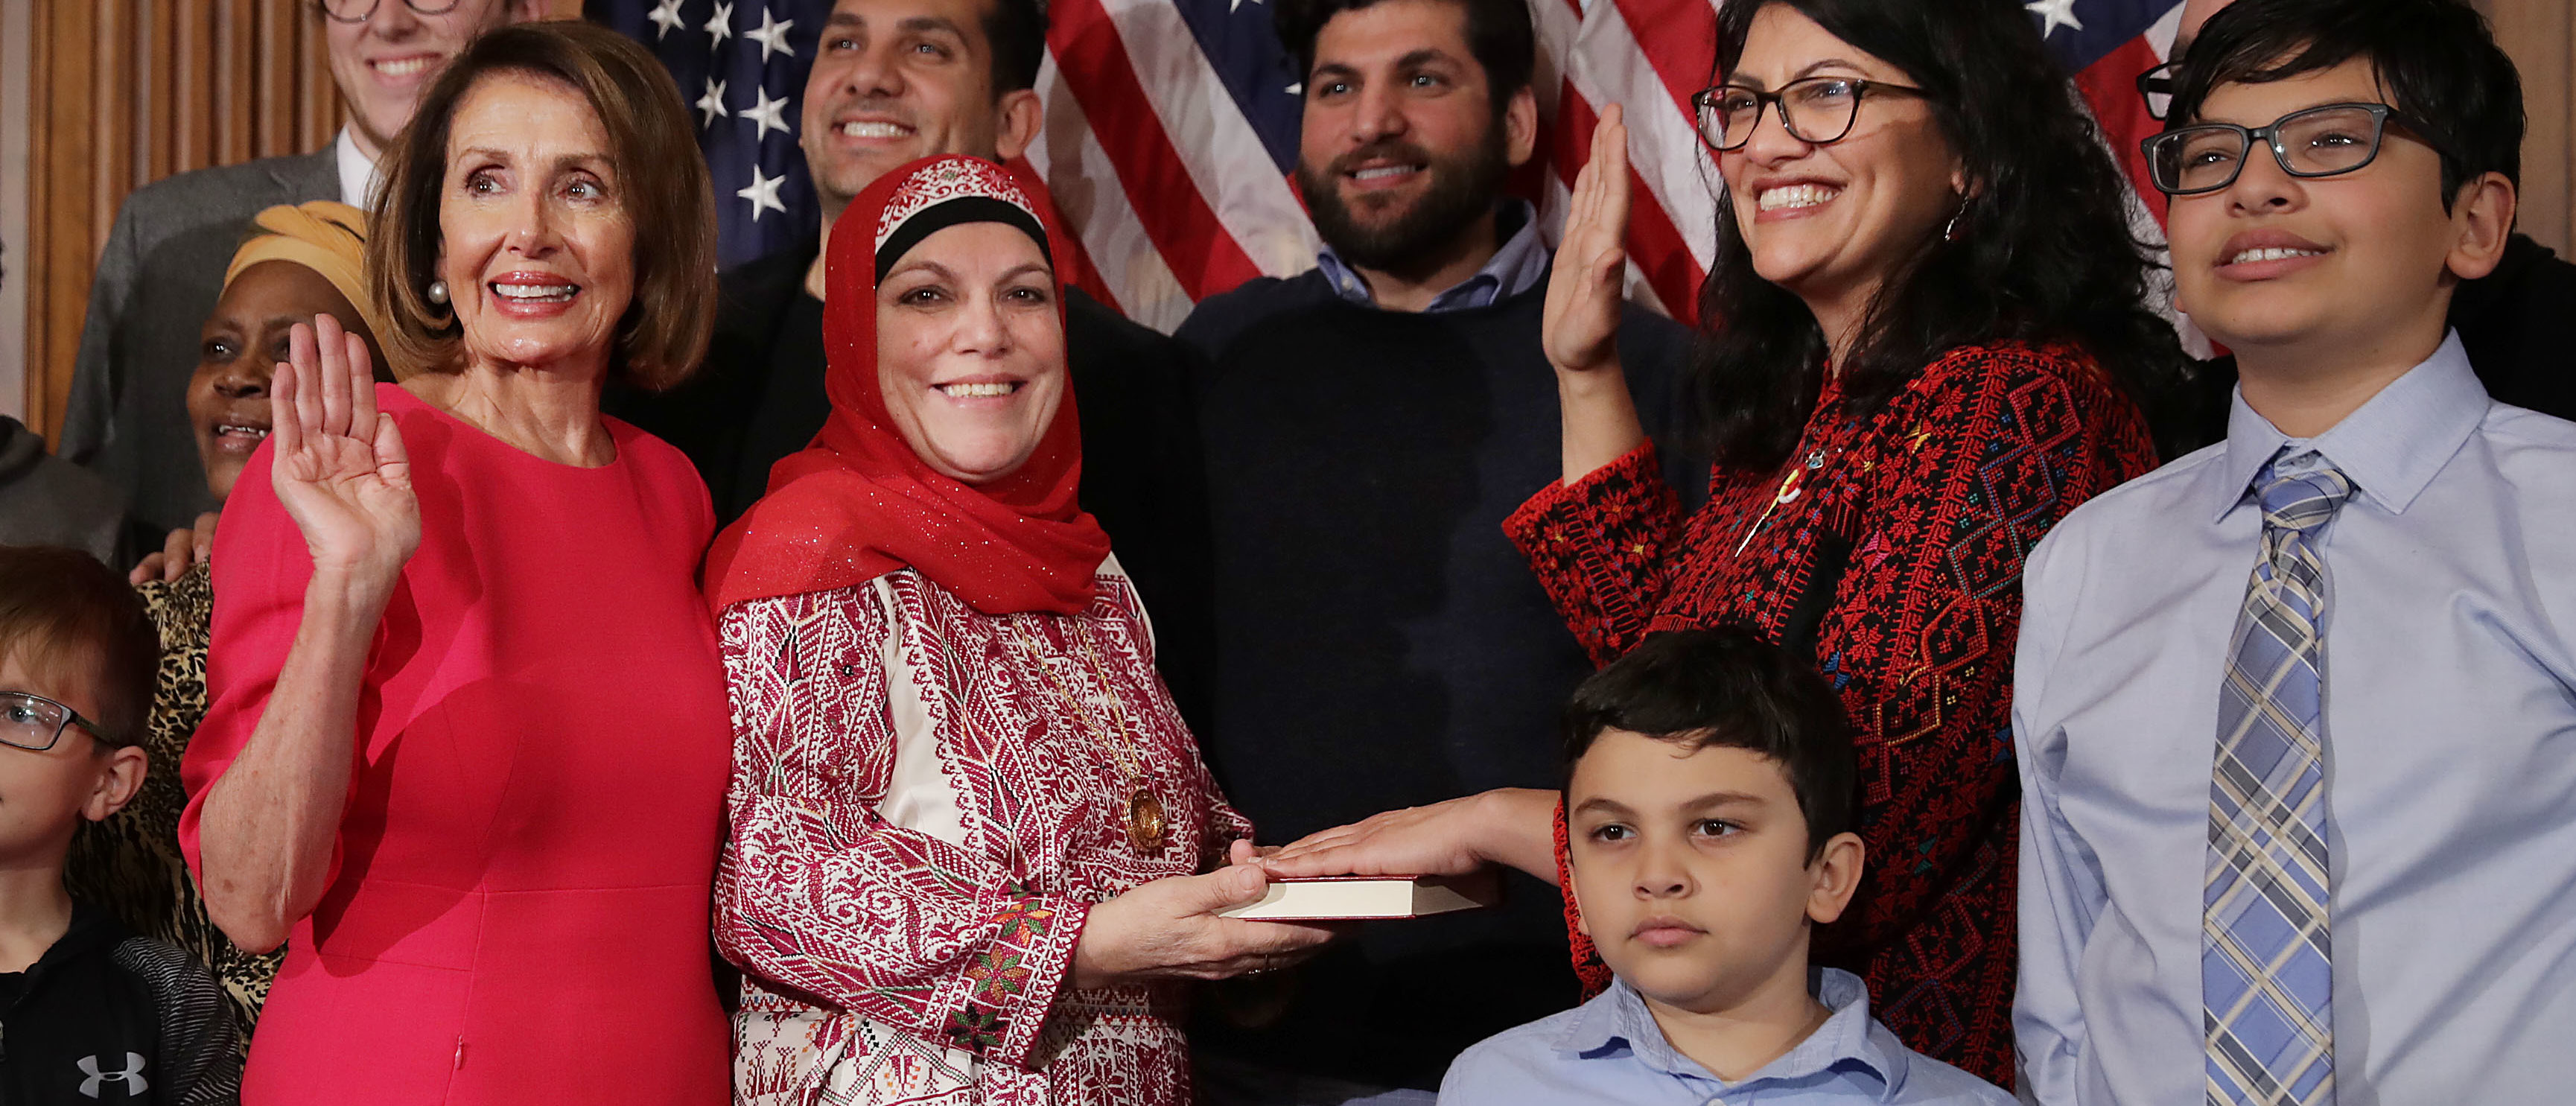 WASHINGTON, DC - JANUARY 03: Speaker of the House Nancy Pelosi (D-CA) poses for photographs with Rep. Rashida Tlaib (D-MI) and her family in the Rayburn Room at the U.S. Capitol January 03, 2019 in Washington, DC. Under the cloud of a partial federal government shutdown, Pelosi reclaimed her former title as speaker and her fellow Democrats took control of the House of Representatives for the second time in eight years. (Photo by Chip Somodevilla/Getty Images)